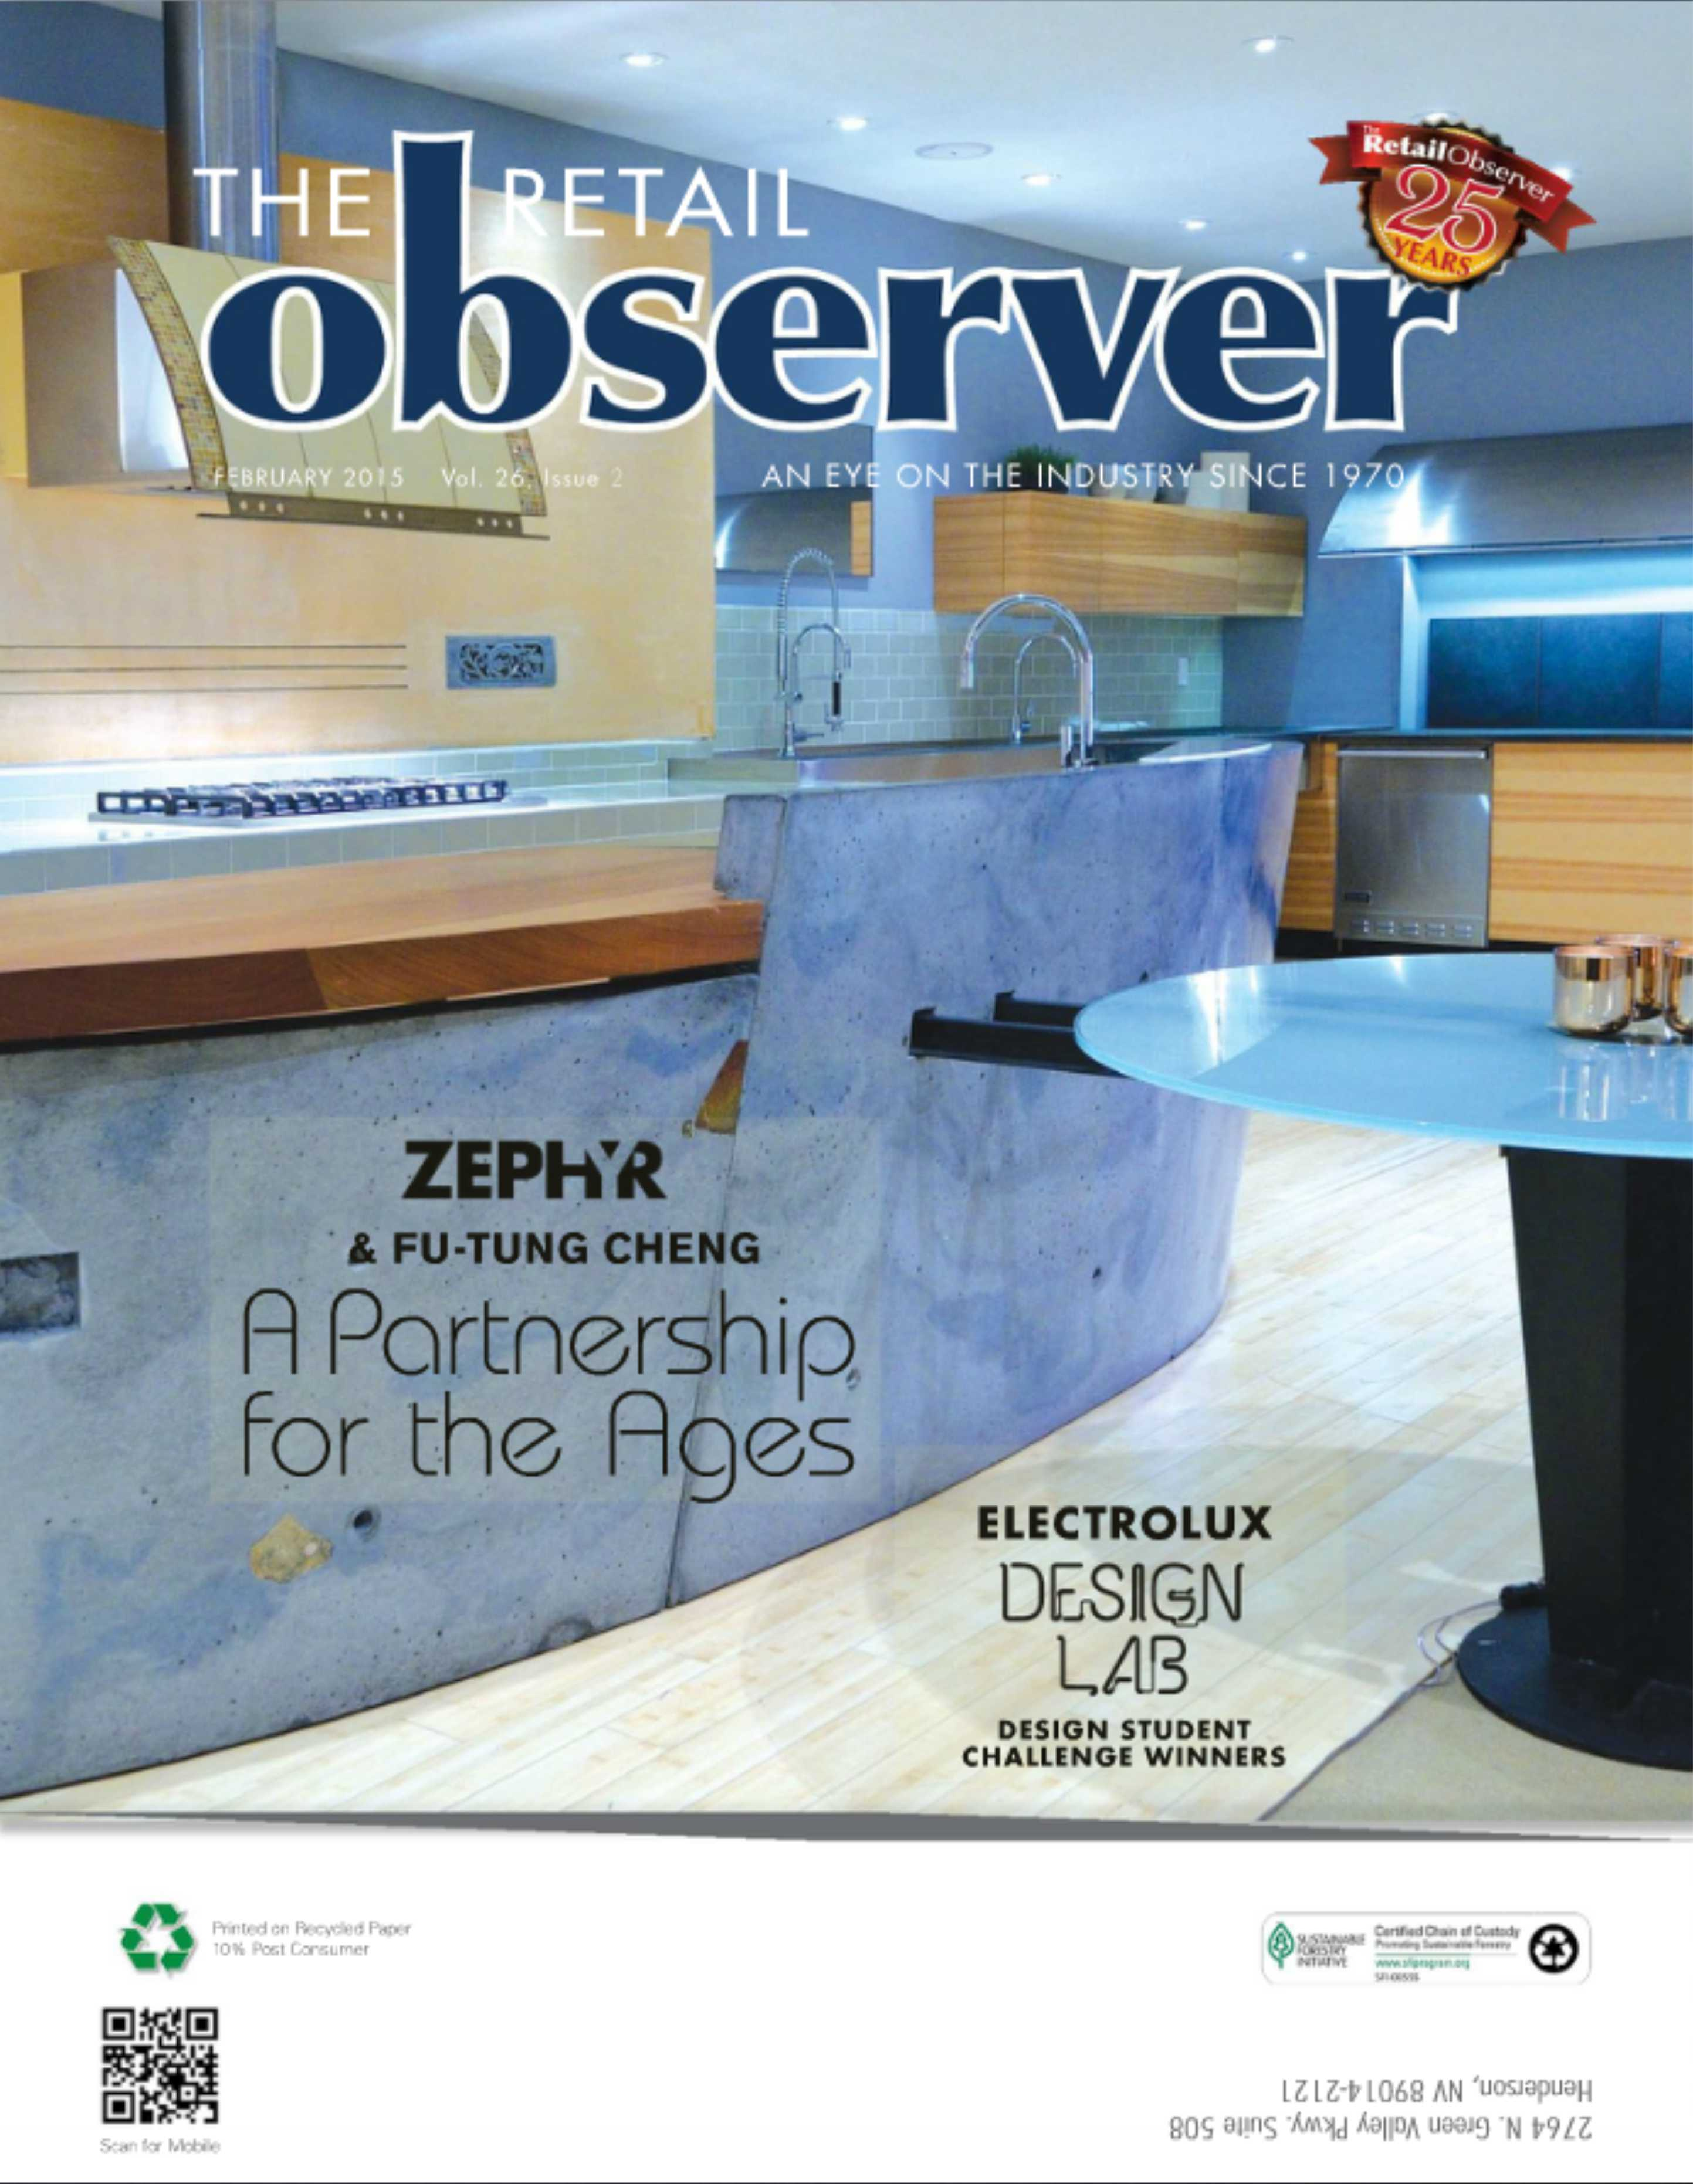 The Retail Observer | A Partnership for the Ages: Zephyr Ventilation and Fu-Tung Cheng look back – featuring CHENG Design